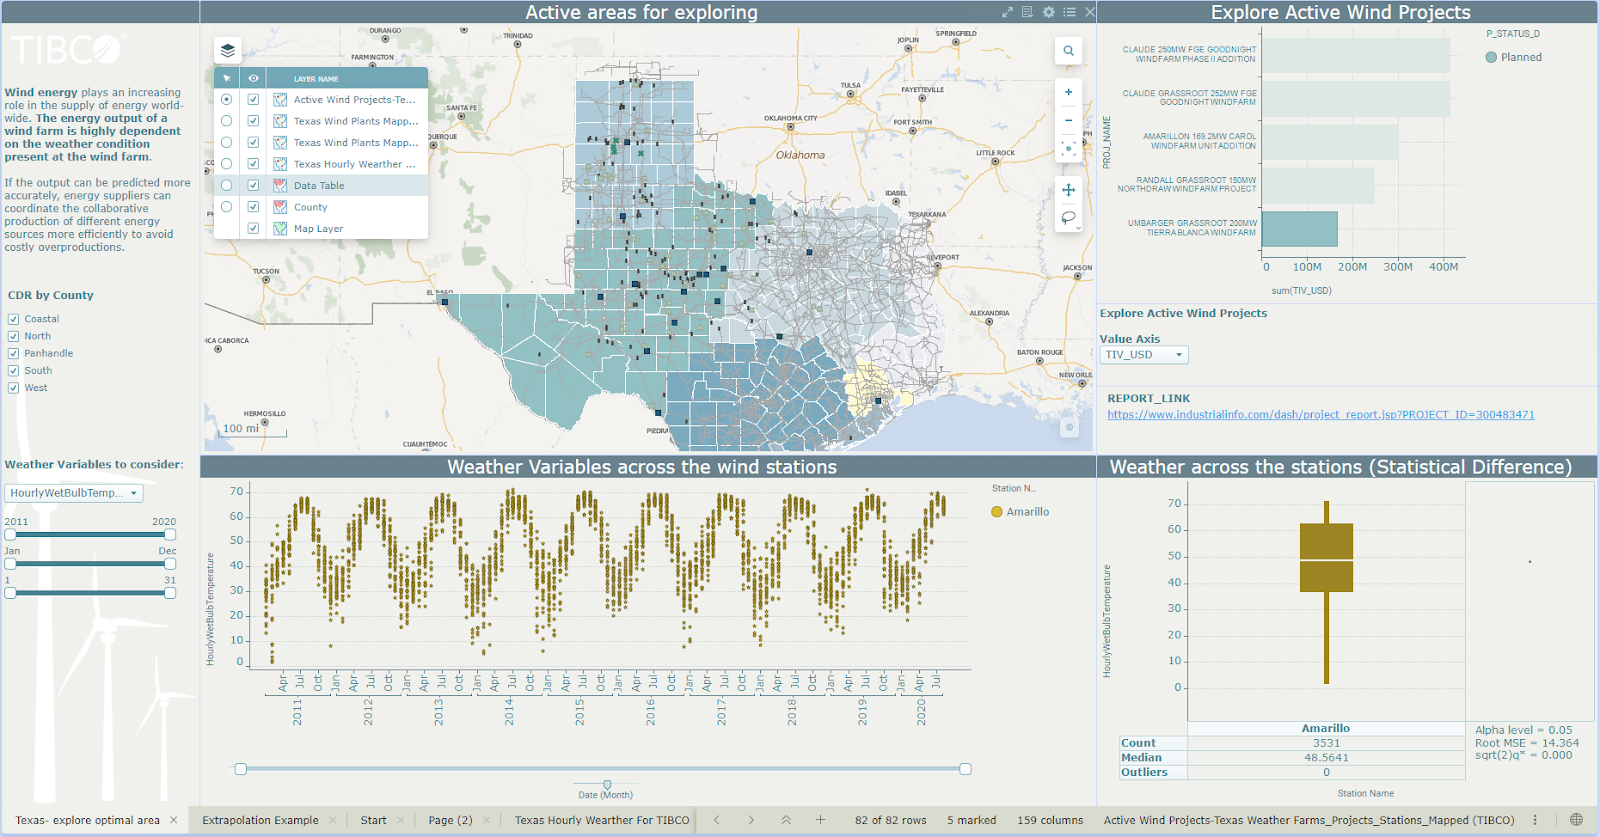 3 Best Practices for Analytics Professionals to Bring Wind Power to Fruition